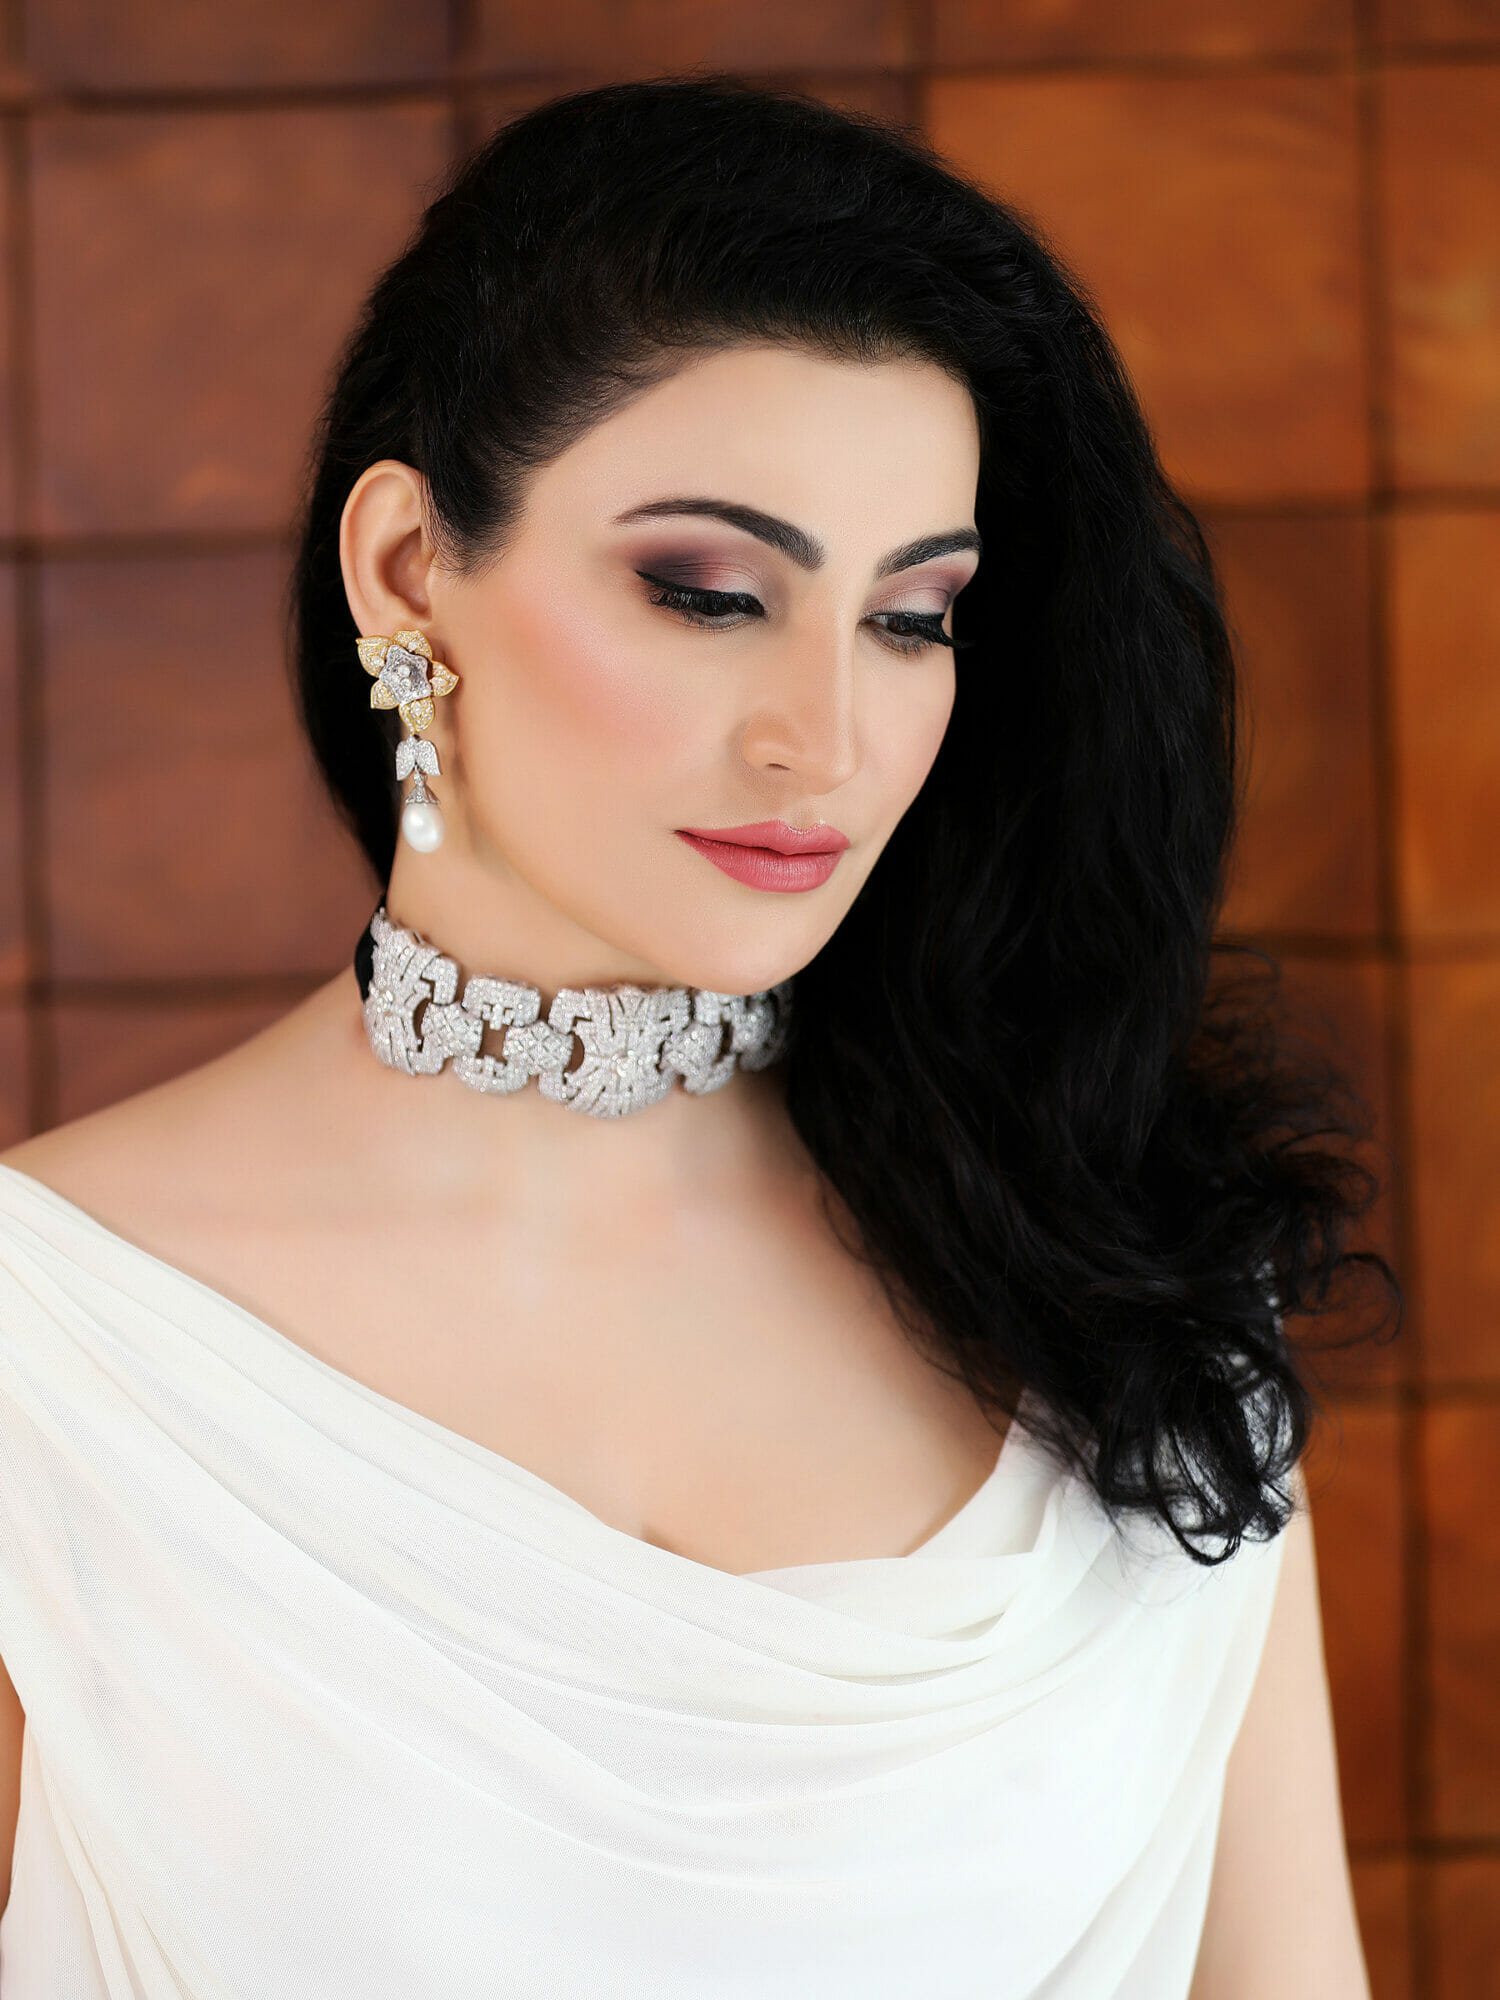 Passi pairs her stunning white diamond choker in the Art Deco style with equally gorgeous diamond earrings from her personal jewellery collection